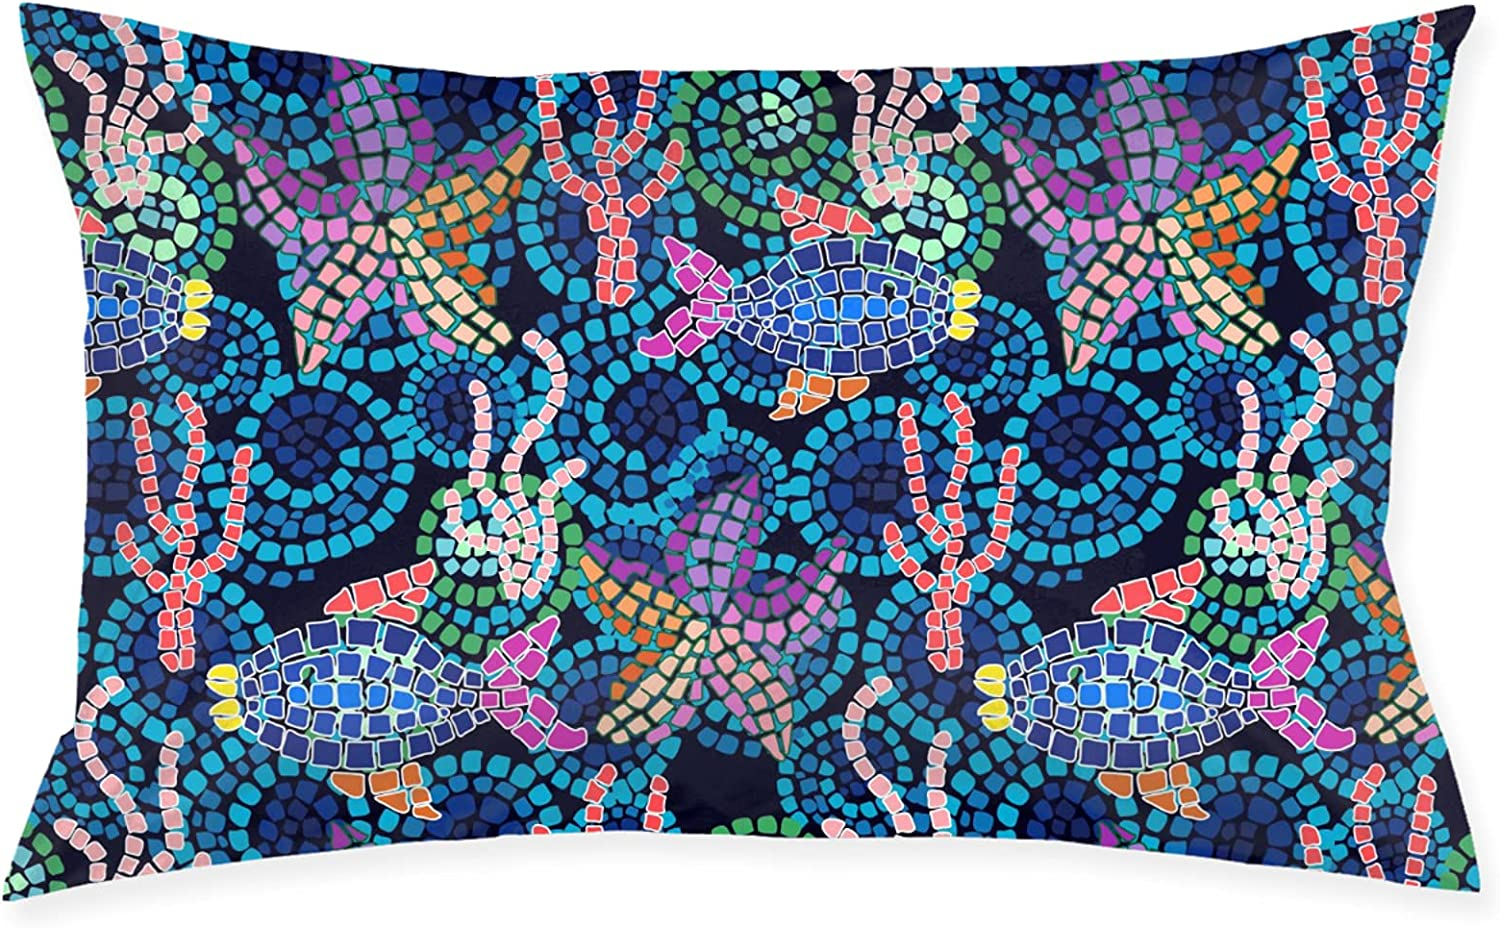 Colored Fish Pillows Pillowcase Bed Sleeping Pillow Super-cheap Mail order